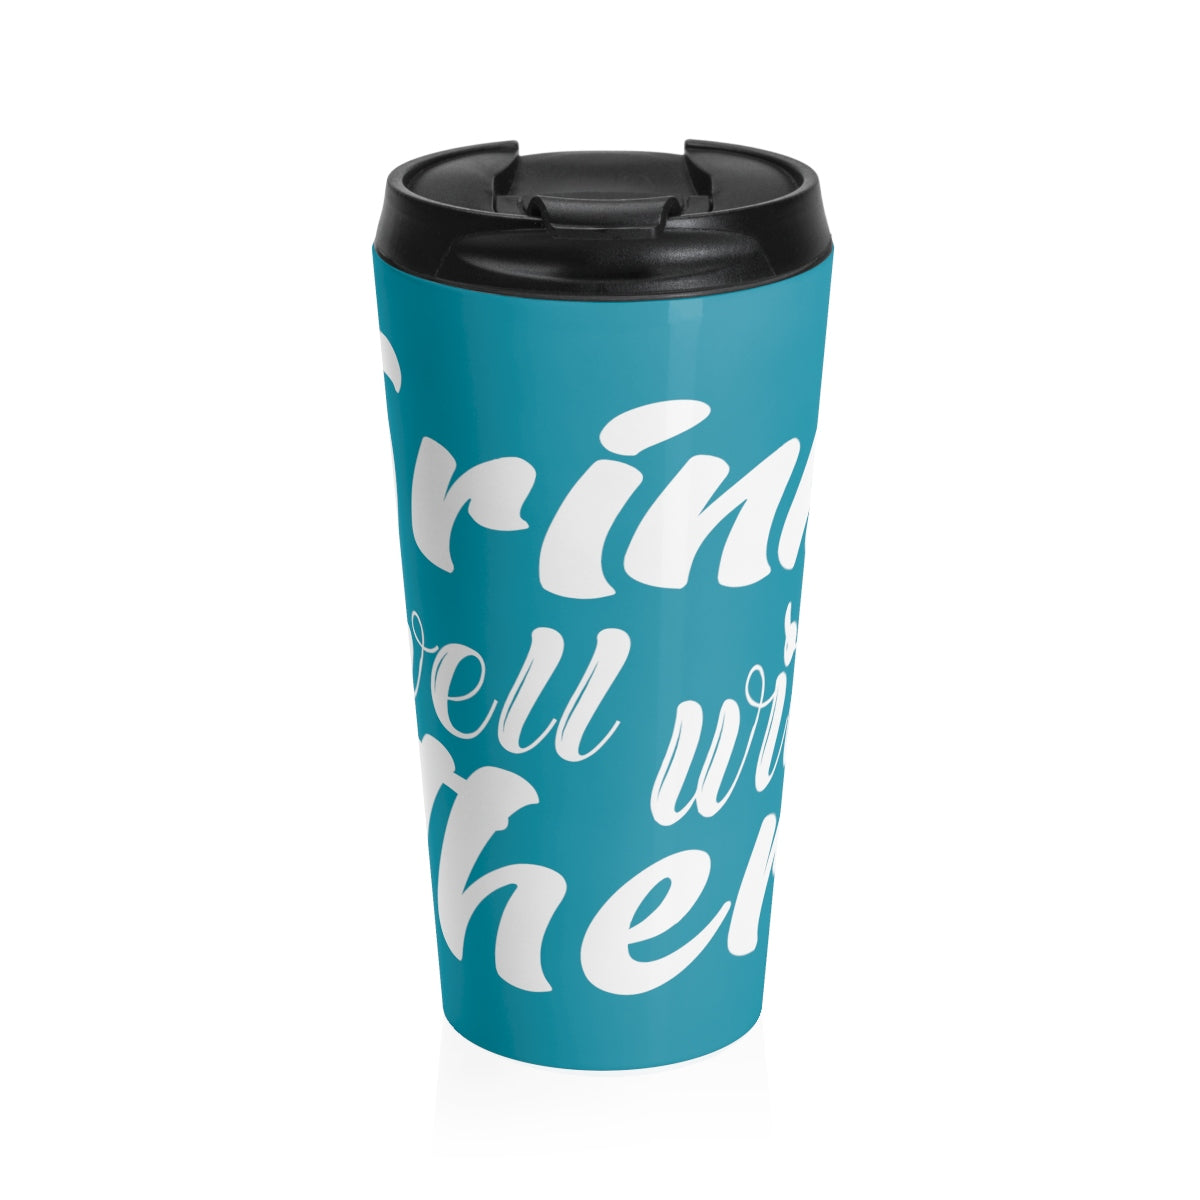 Drinks Well with Others Stainless Steel Drink Tumbler in Turquoise - Nauti Details